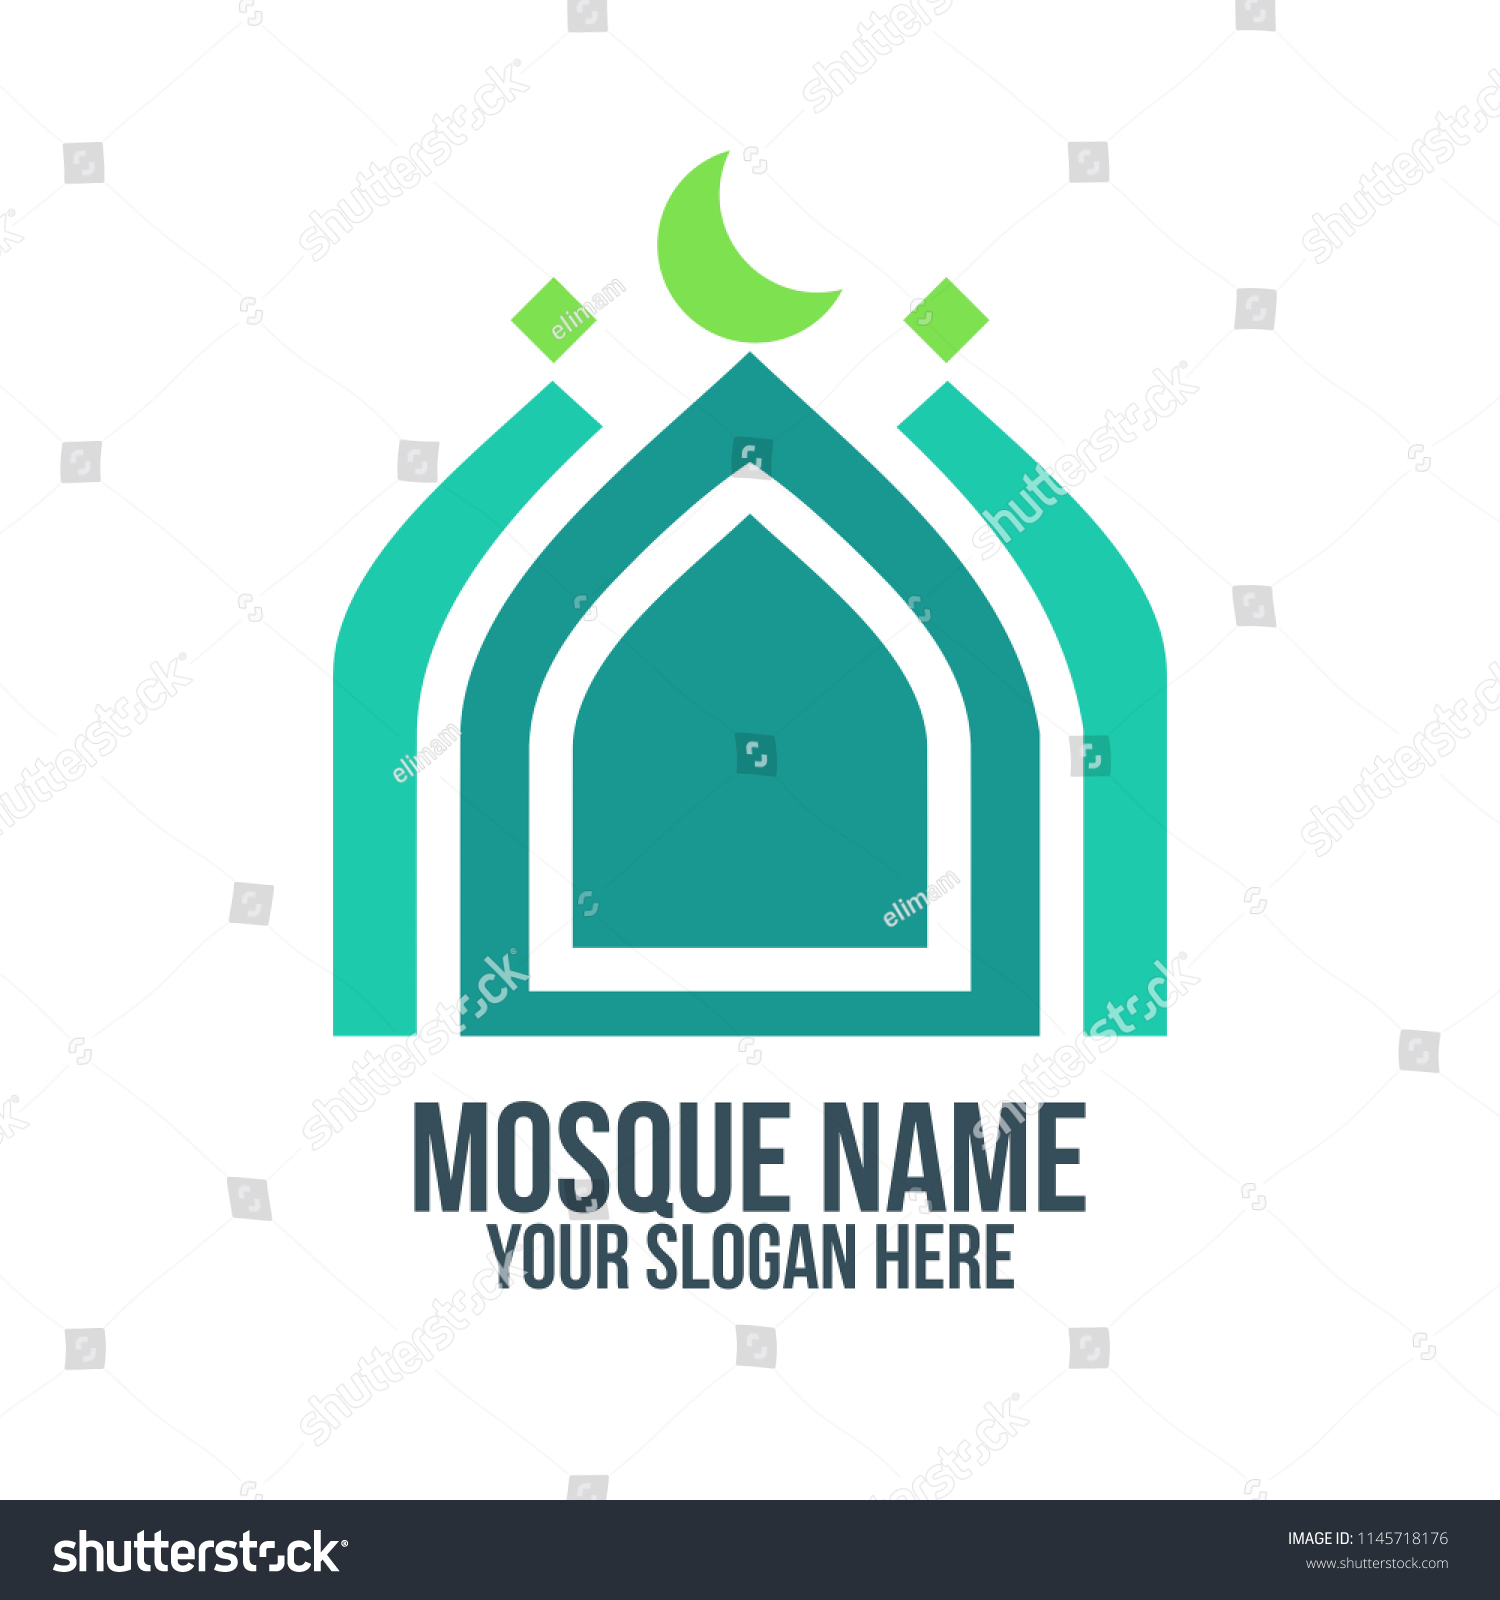 mosque muslim islam abstract concept logo stock vector royalty free 1145718176 https www shutterstock com image vector mosque muslim islam abstract concept logo 1145718176